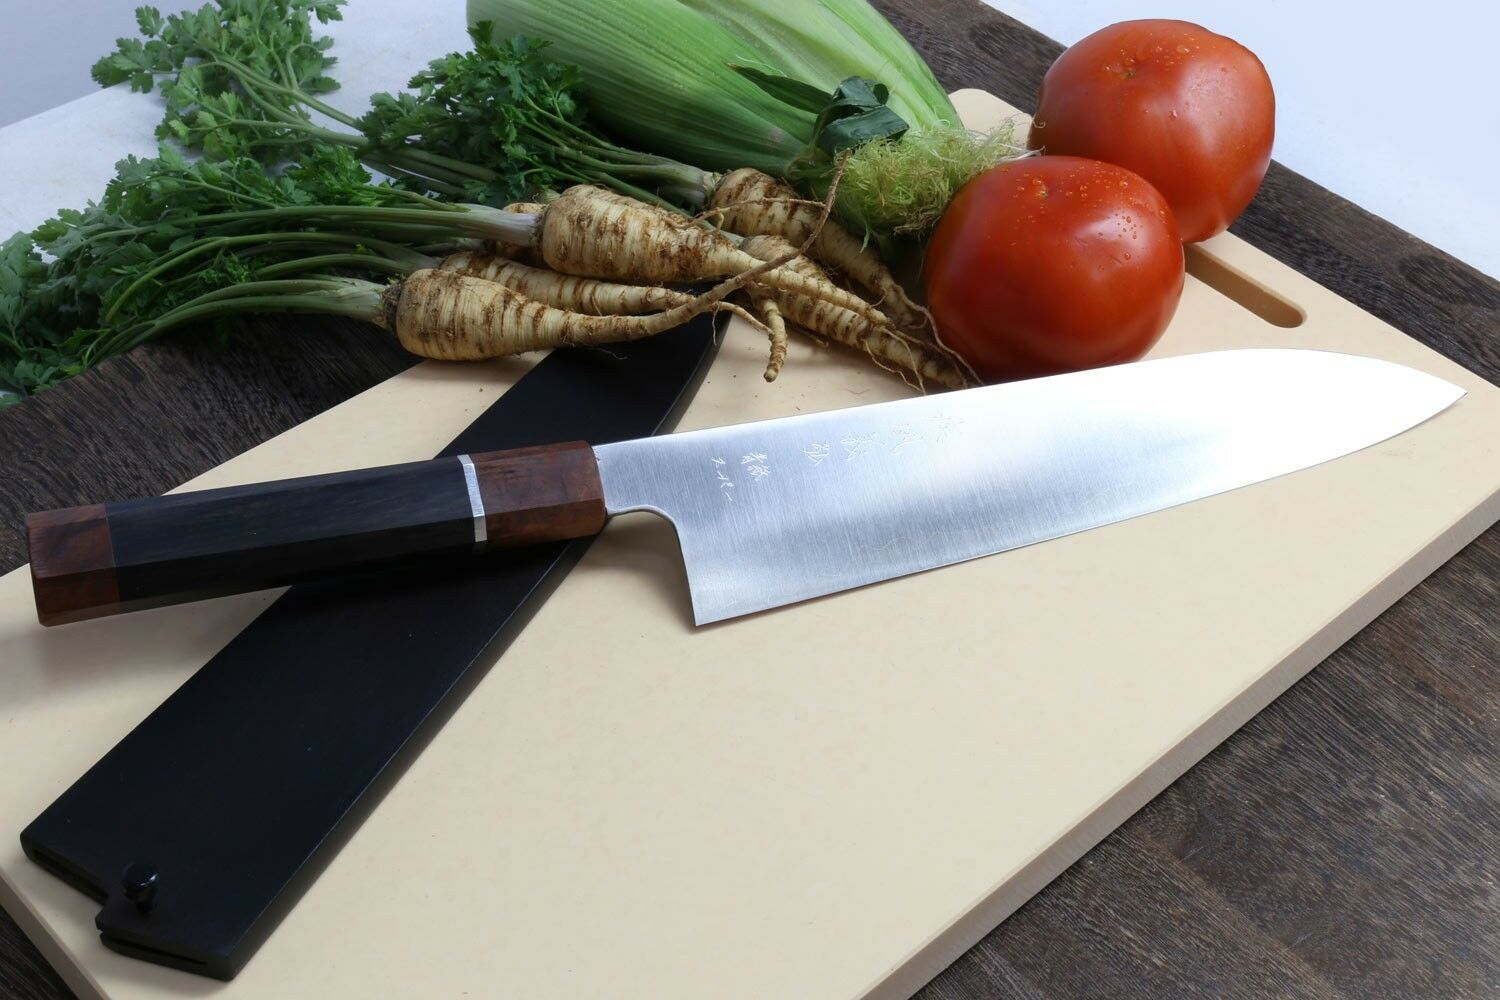 super blue high carbon steel stainless clad gyuto chefs knife with super blue high carbon steel with a hardness on the rockwell scale of 64 65 is considered to be the top of its class in high carbon steel metallurgy